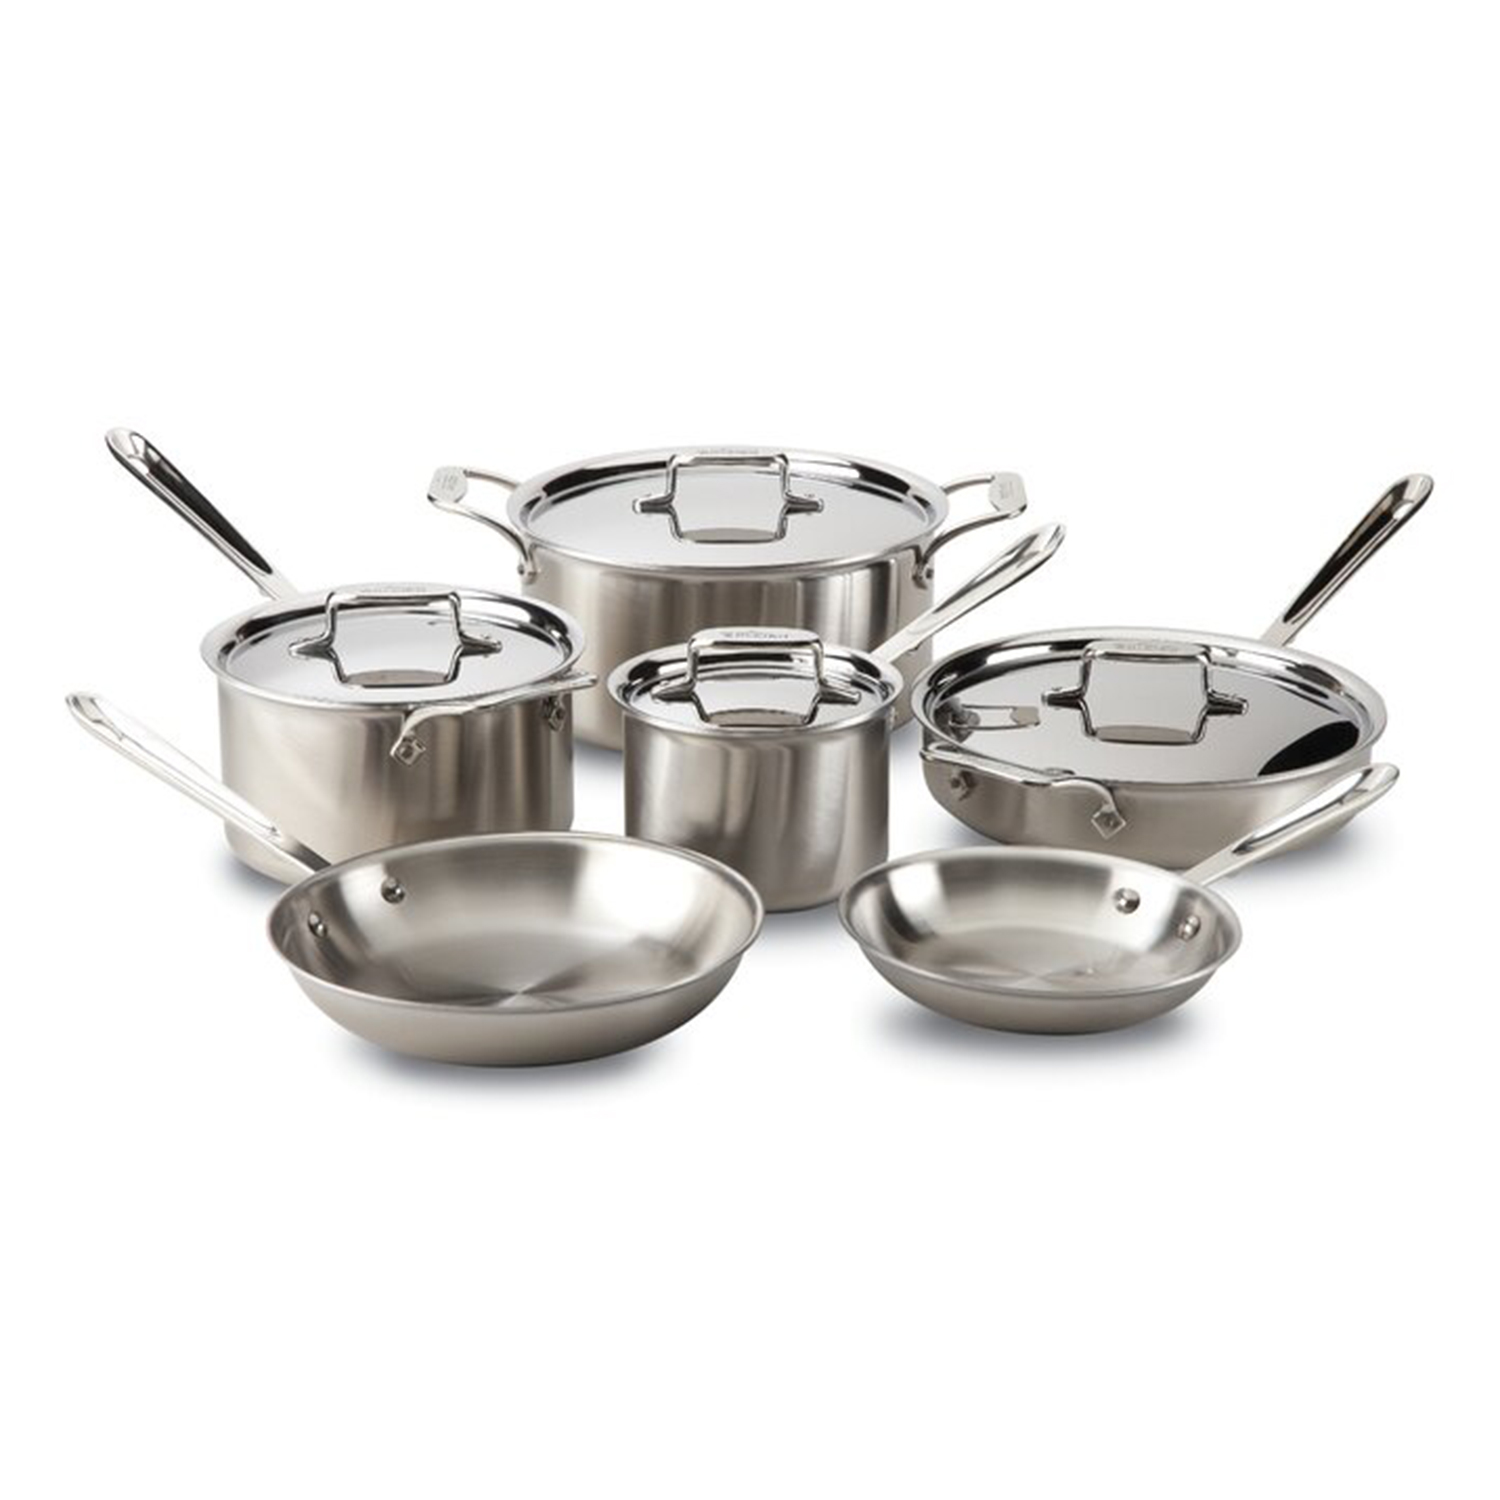 All-Clad D5 Stainless Brushed 10-Piece Aluminum Cookware Set